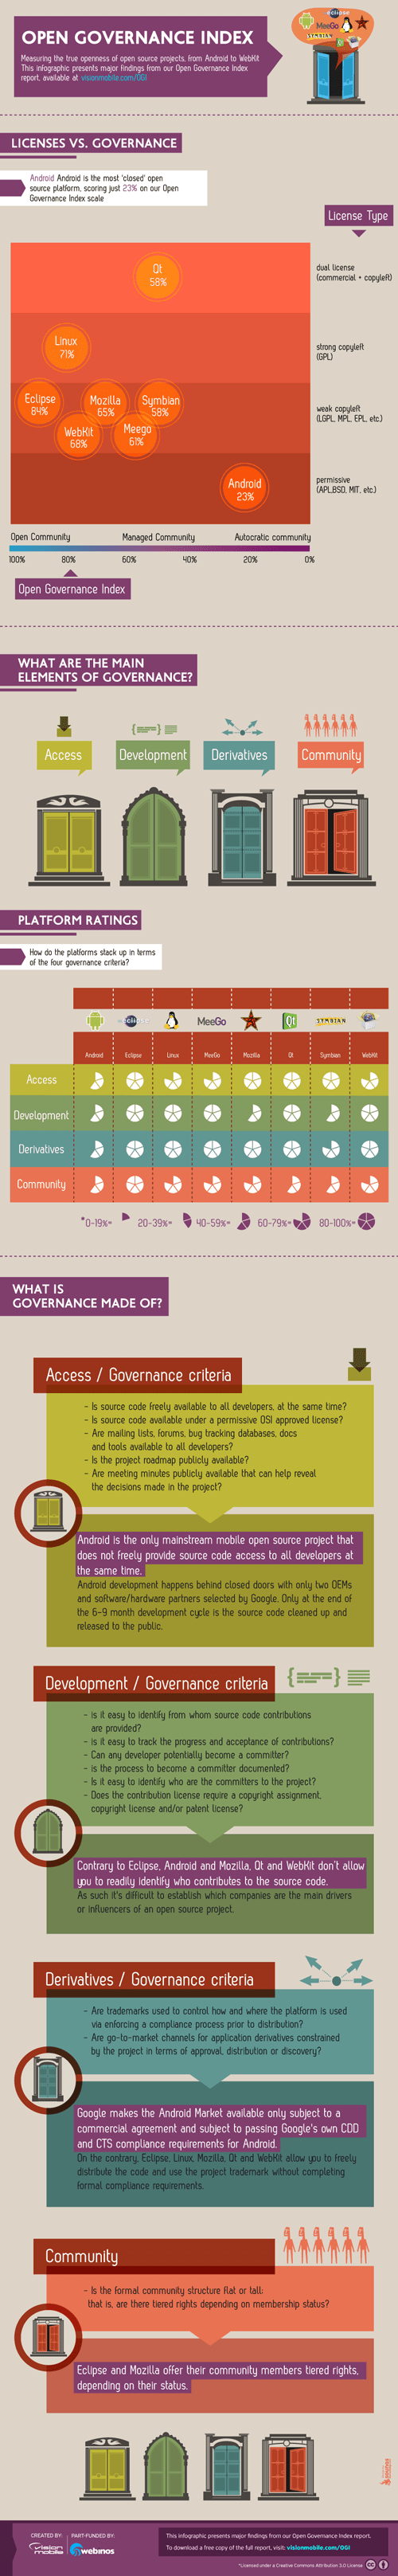 how open is android android open governance index android open android free